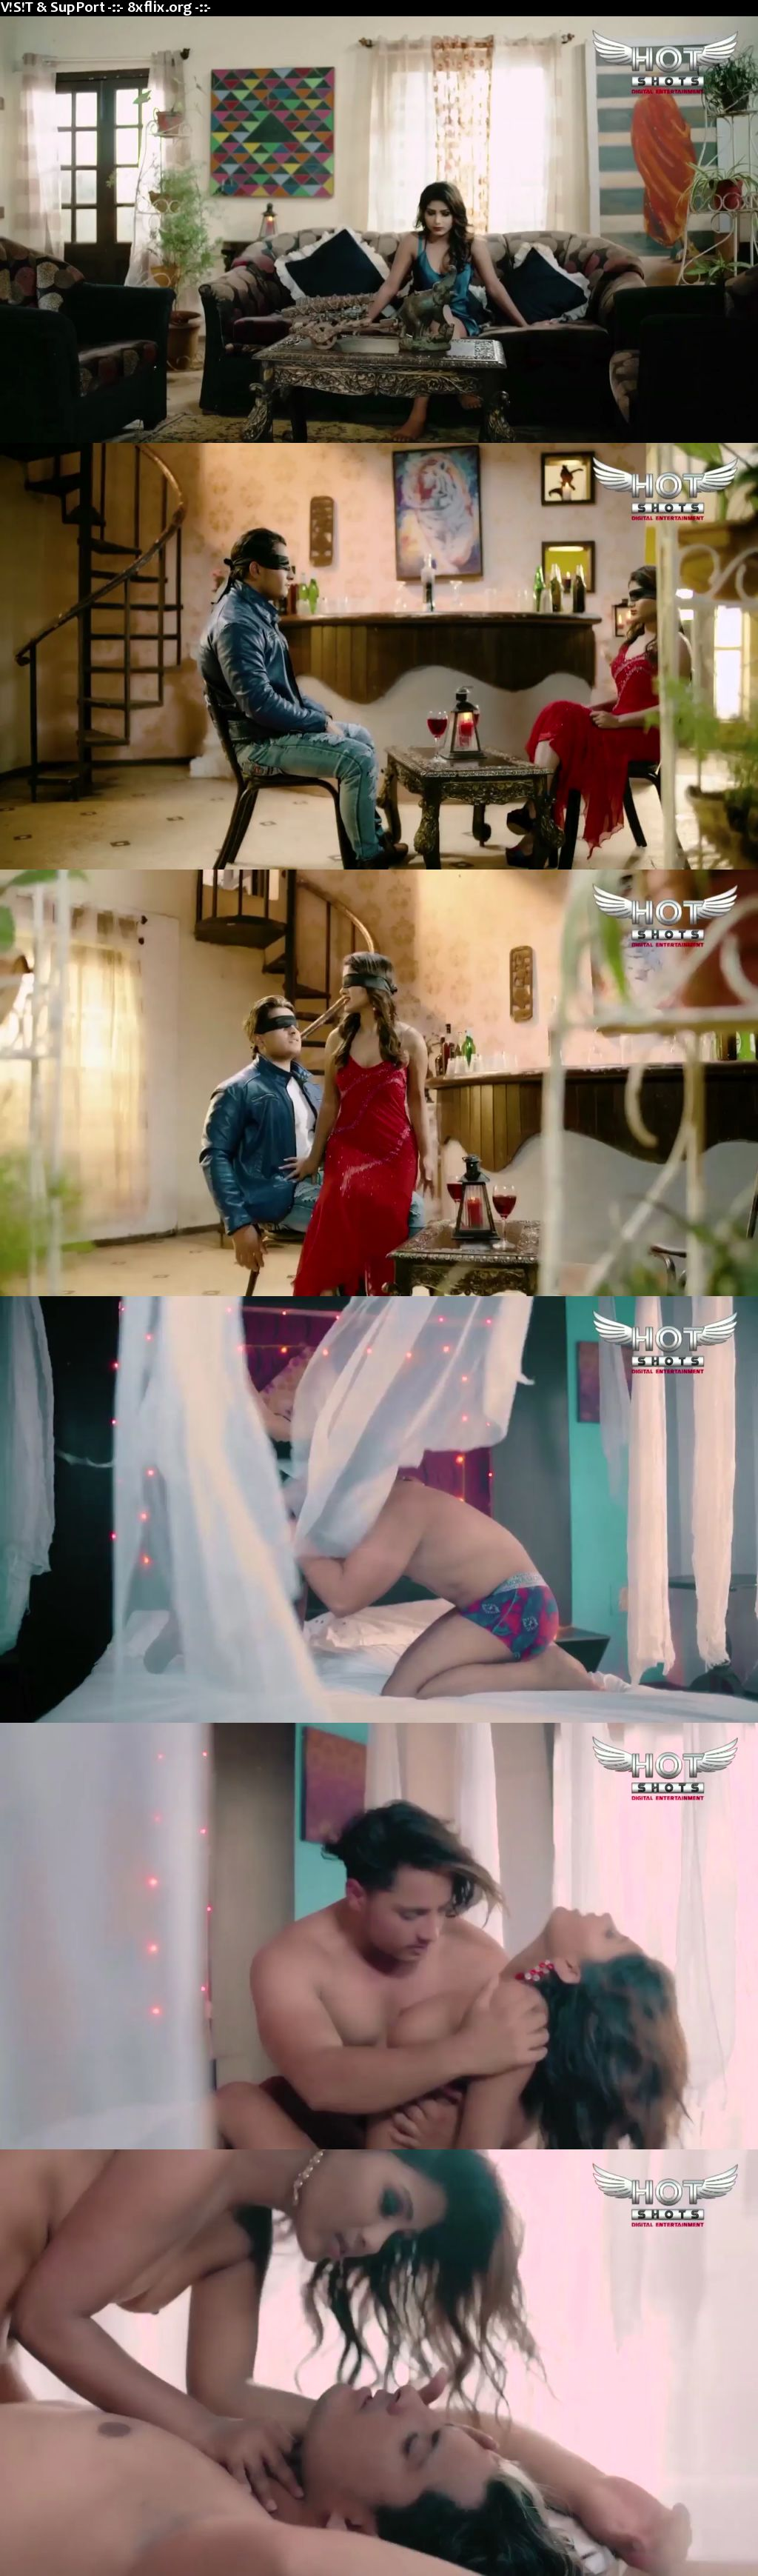 18+ Blind Date Part 1 2020 Full Hindi HOT Movie Download 720p HDRip